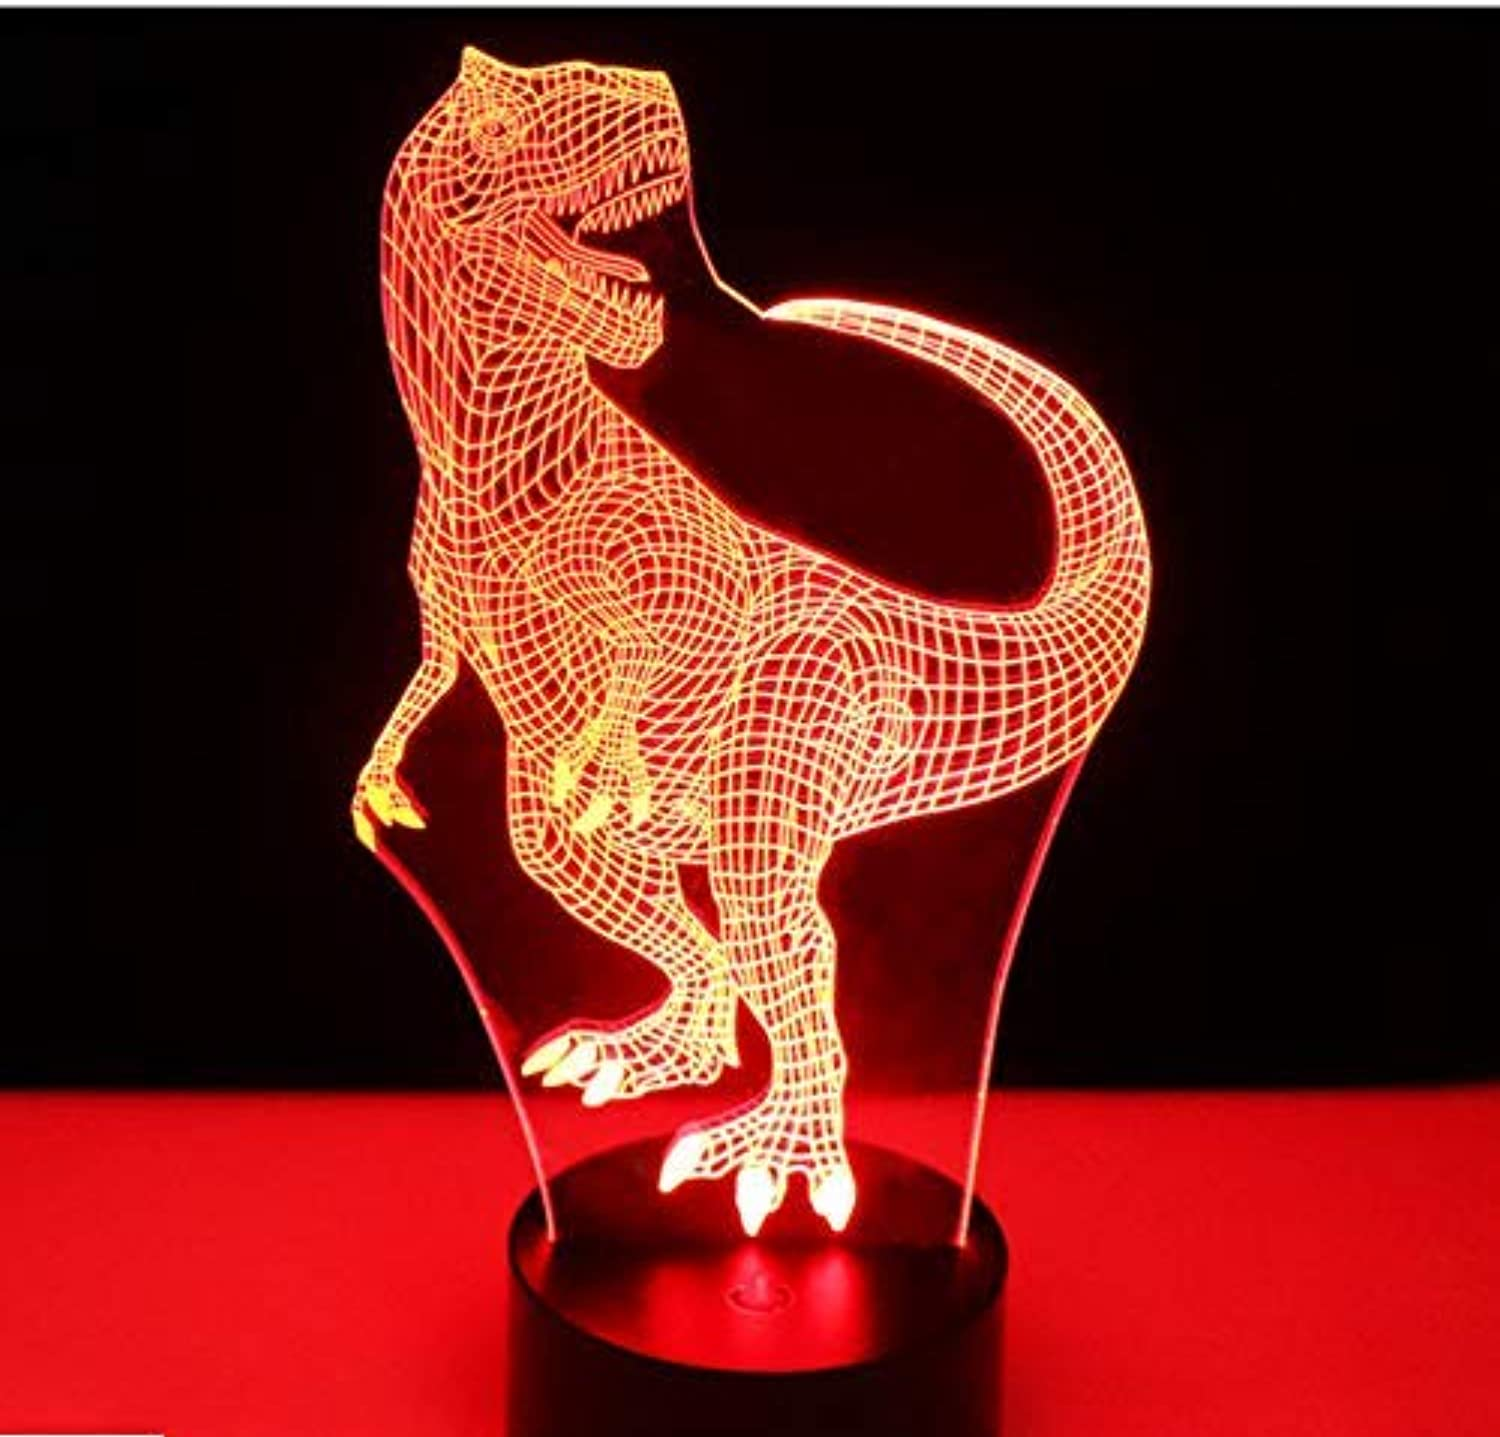 BMY 3D Led Night Lights Happy Tyrannosaurus Rex Dinosaur with 7 colors Light for Home Decoration Lamp Amazing Visualization